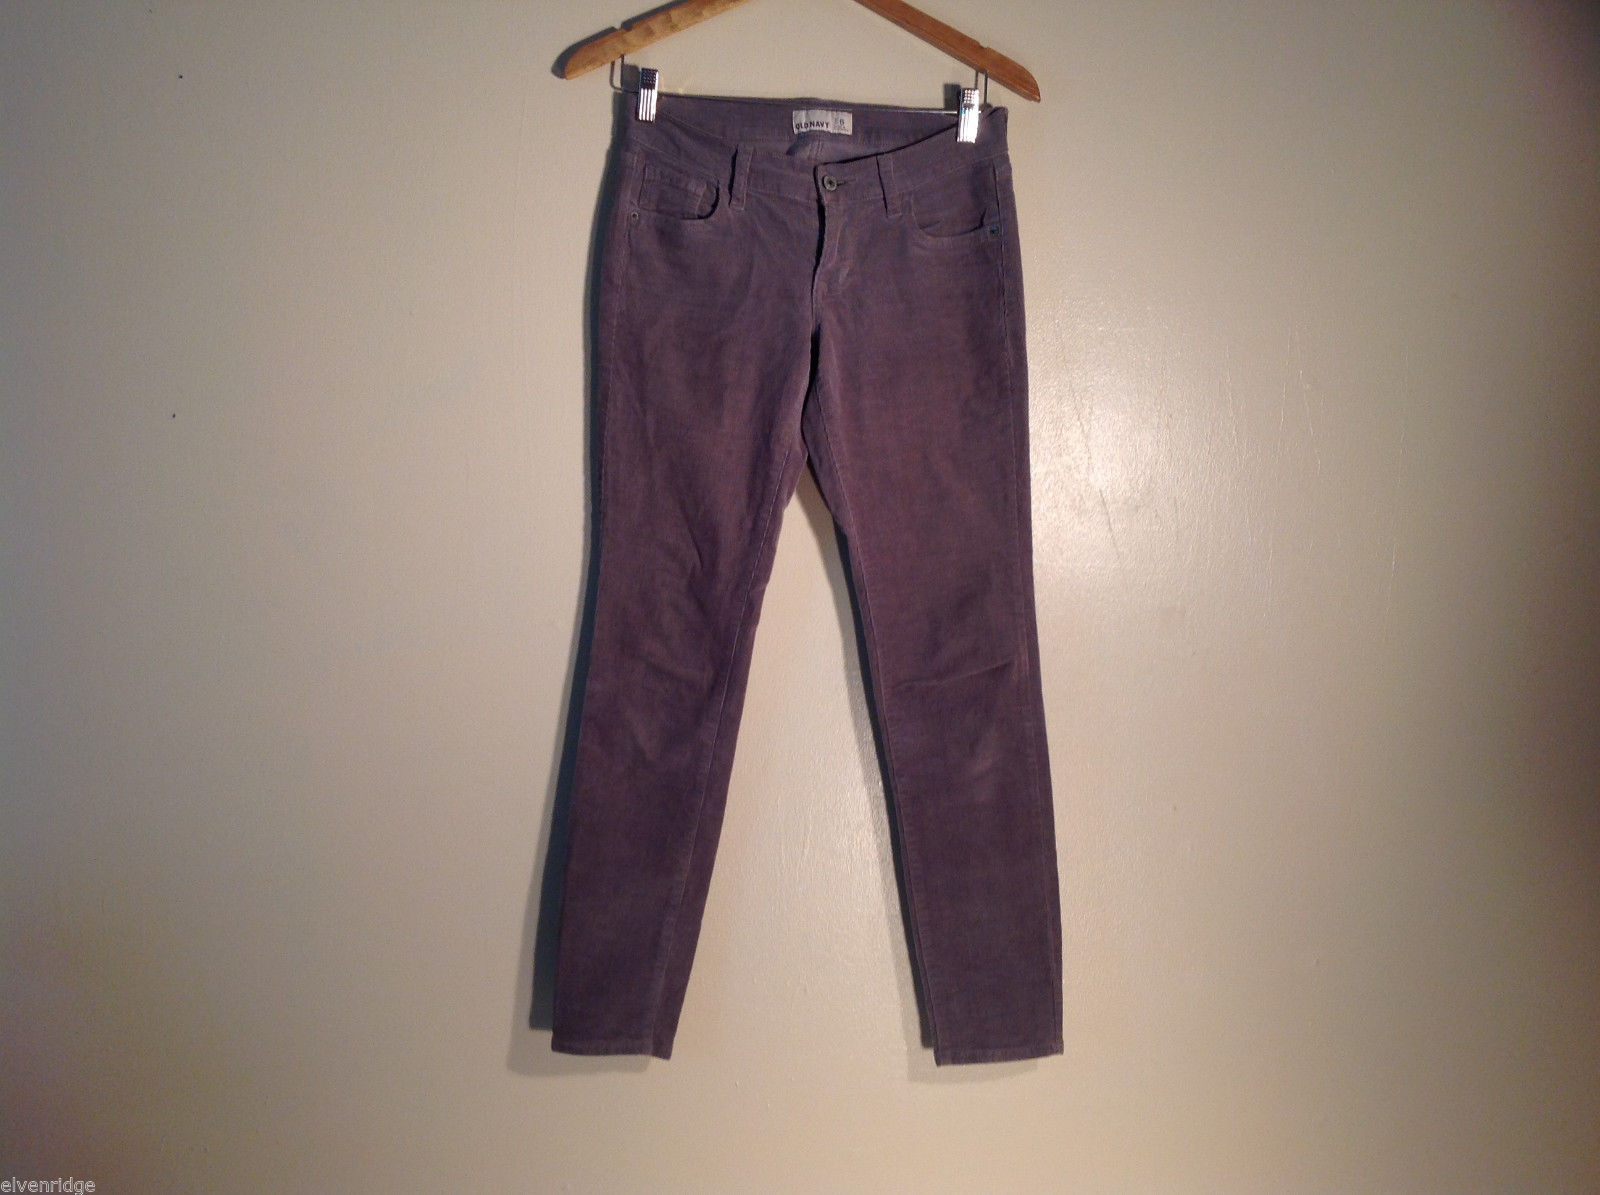 Womens Old Navy Size 6 Gray Corduroy Pants/Jeans Excellent